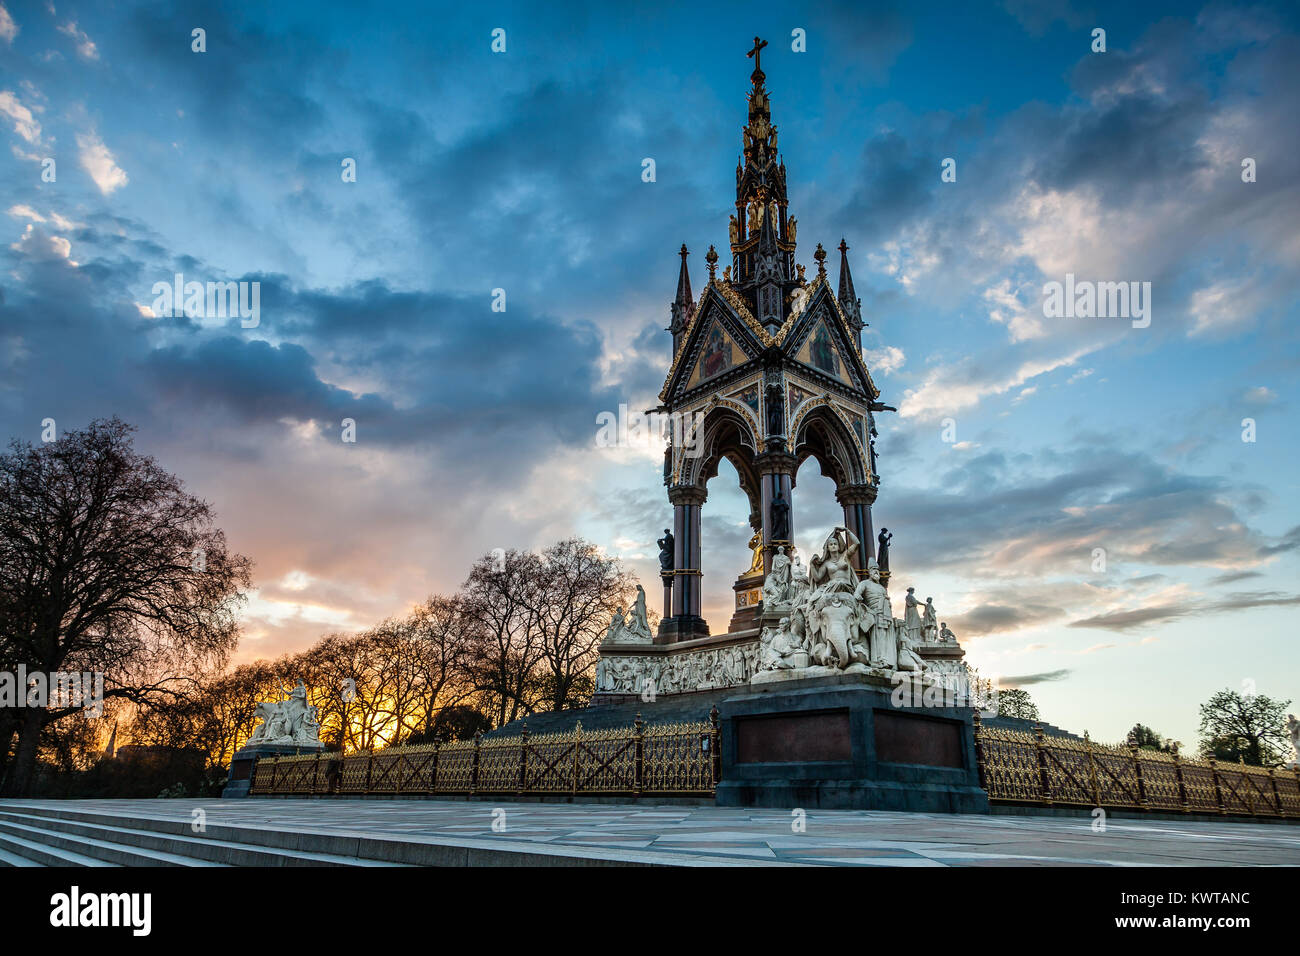 The Prince Albert Memorial monument in Kensington Gardens opposite to Hyde Park - Stock Image